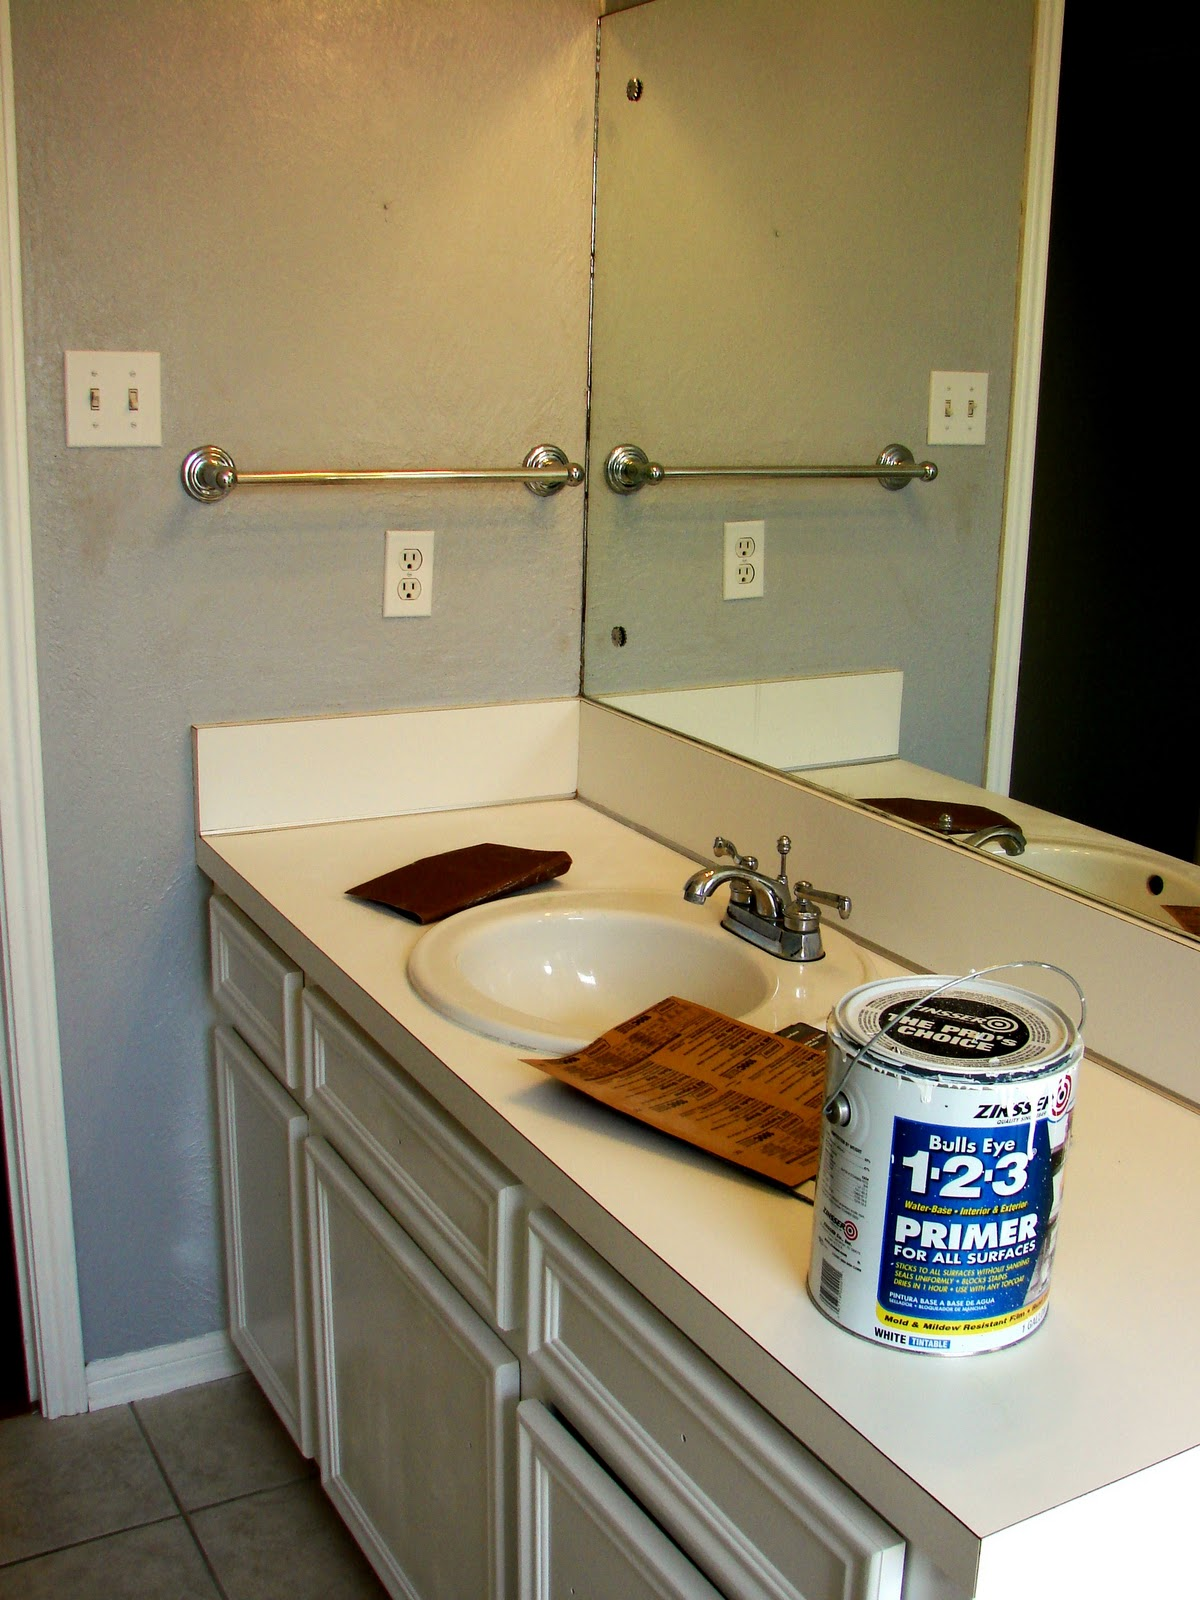 Imperfect treasures spray painted bathroom countertop for Bathroom countertops